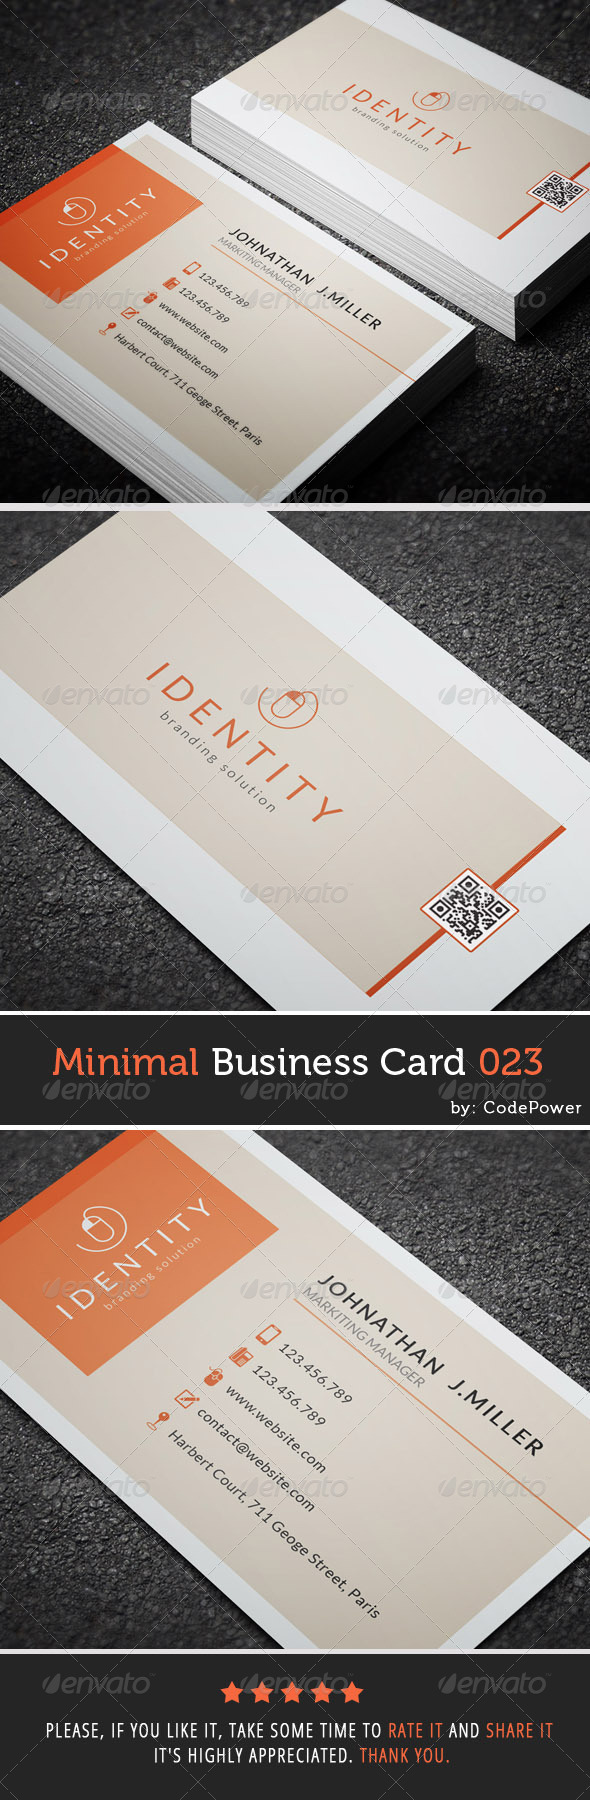 GraphicRiver Minimal Business Card 023 7600414